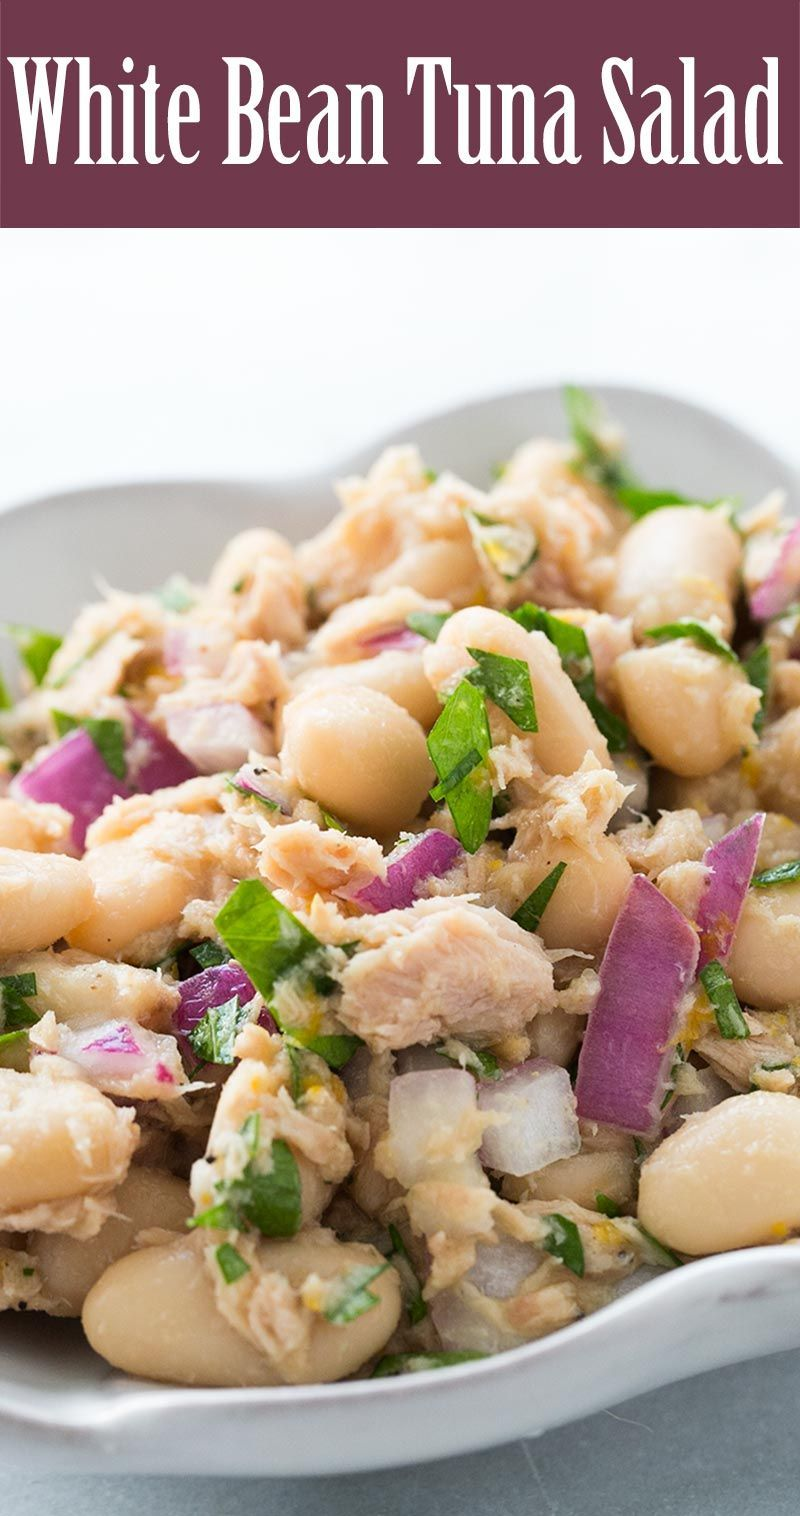 tuna and white bean salad, a classic combination and so easy to make! Takes only 15 minutes. On